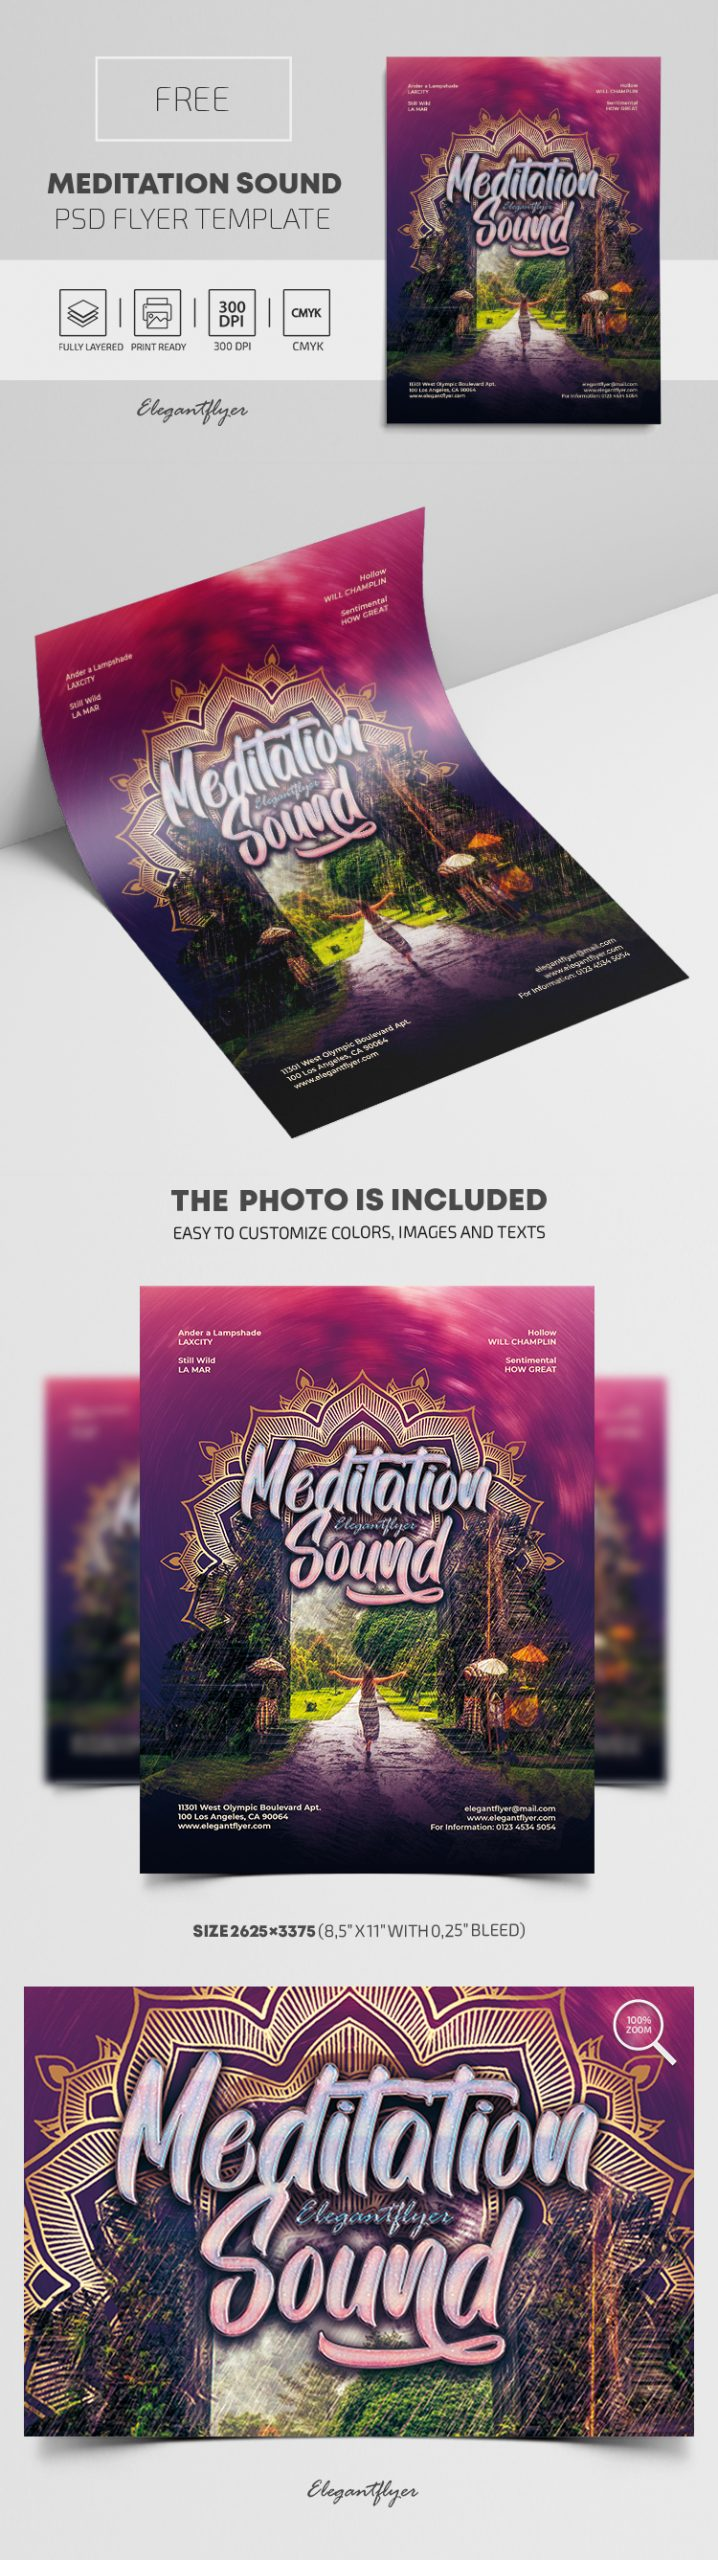 Meditation Sound – Free PSD Flyer Template